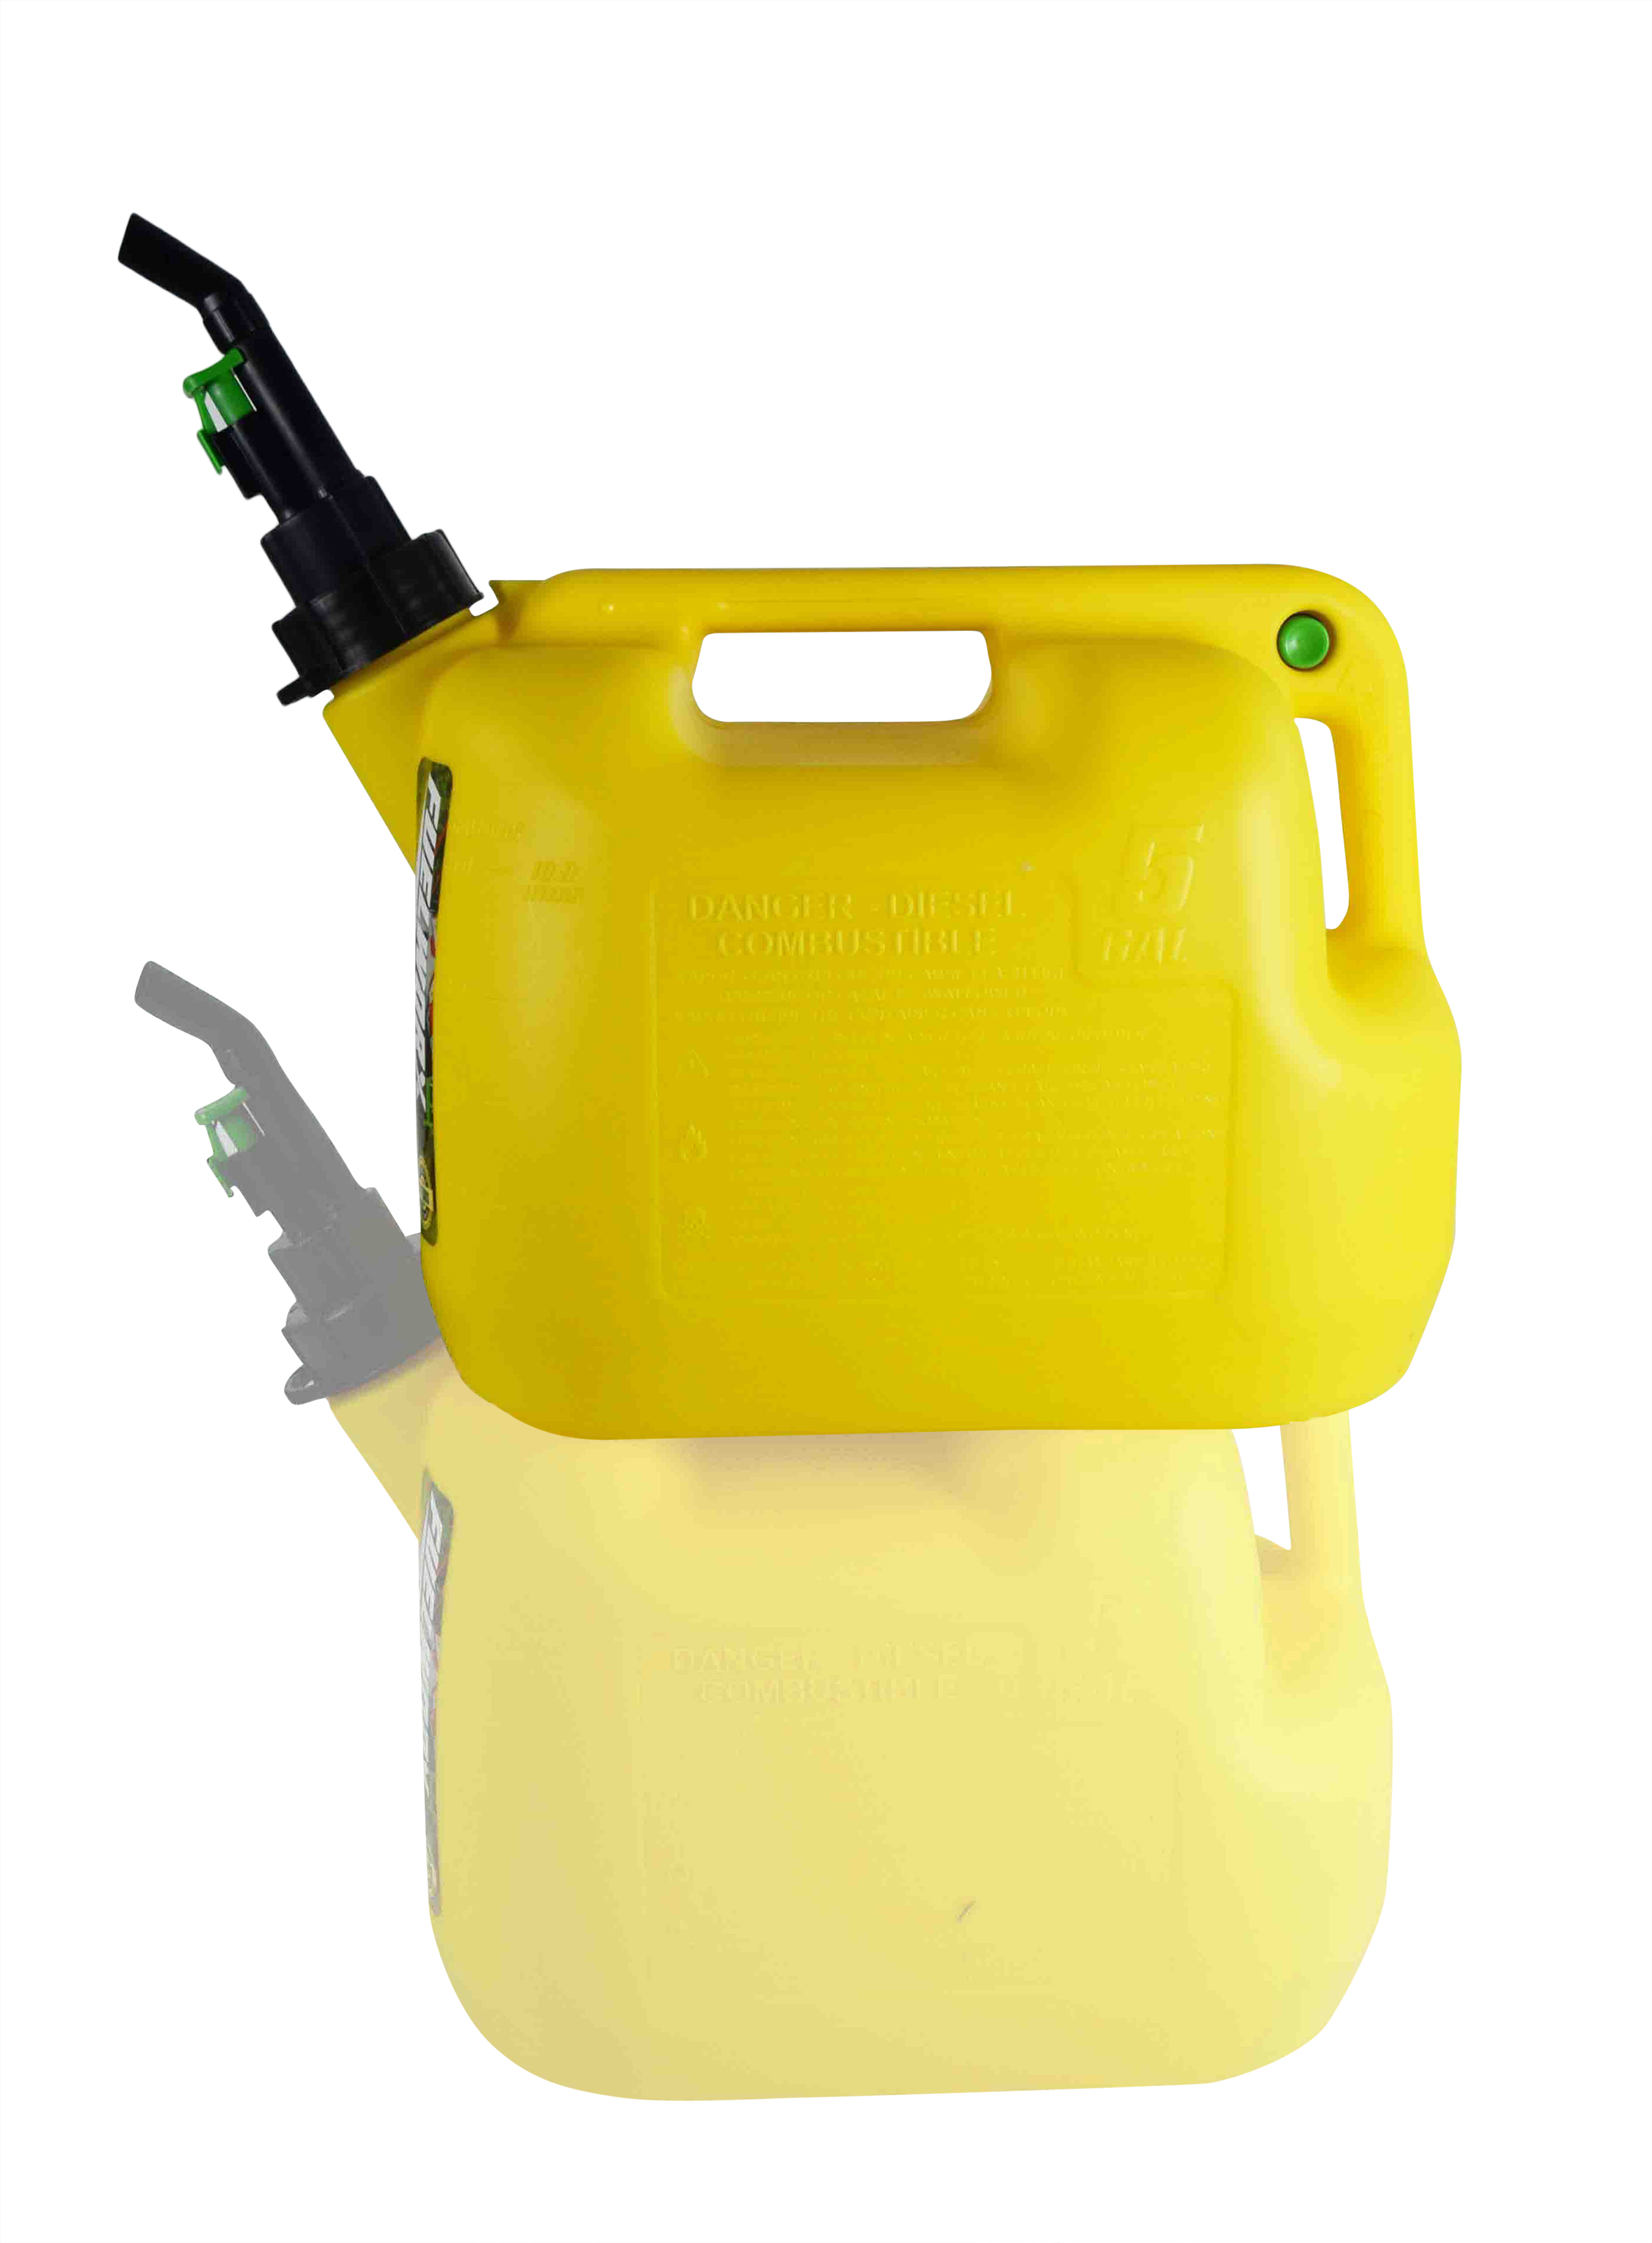 Fuelworx-Yellow-5-Gallon-Stackable-Fast-Pour-Diesel-Fuel-Cans-CARB-Compliant-Made-in-The-USA-5-Gallon-Diesel-Cans-Single-image-1